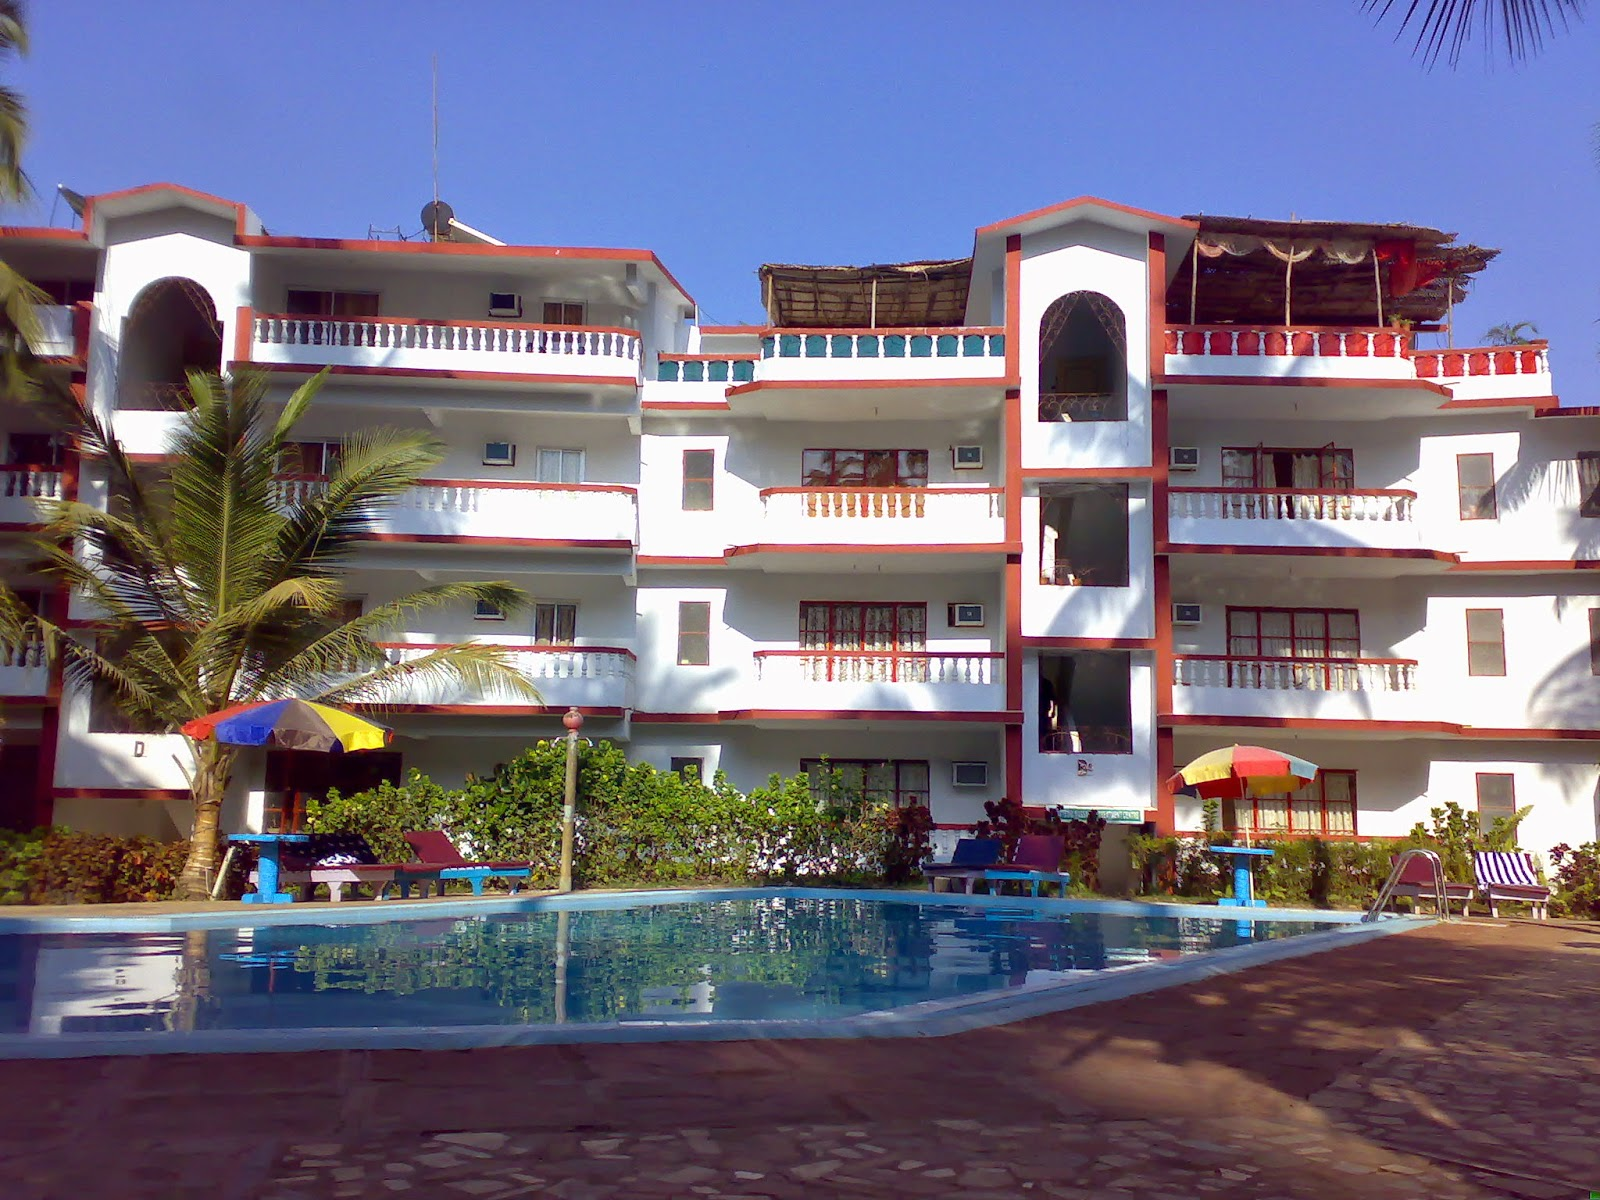 Goa holiday guide luxury and budget hotels for goa tours for Luxury hotel guide